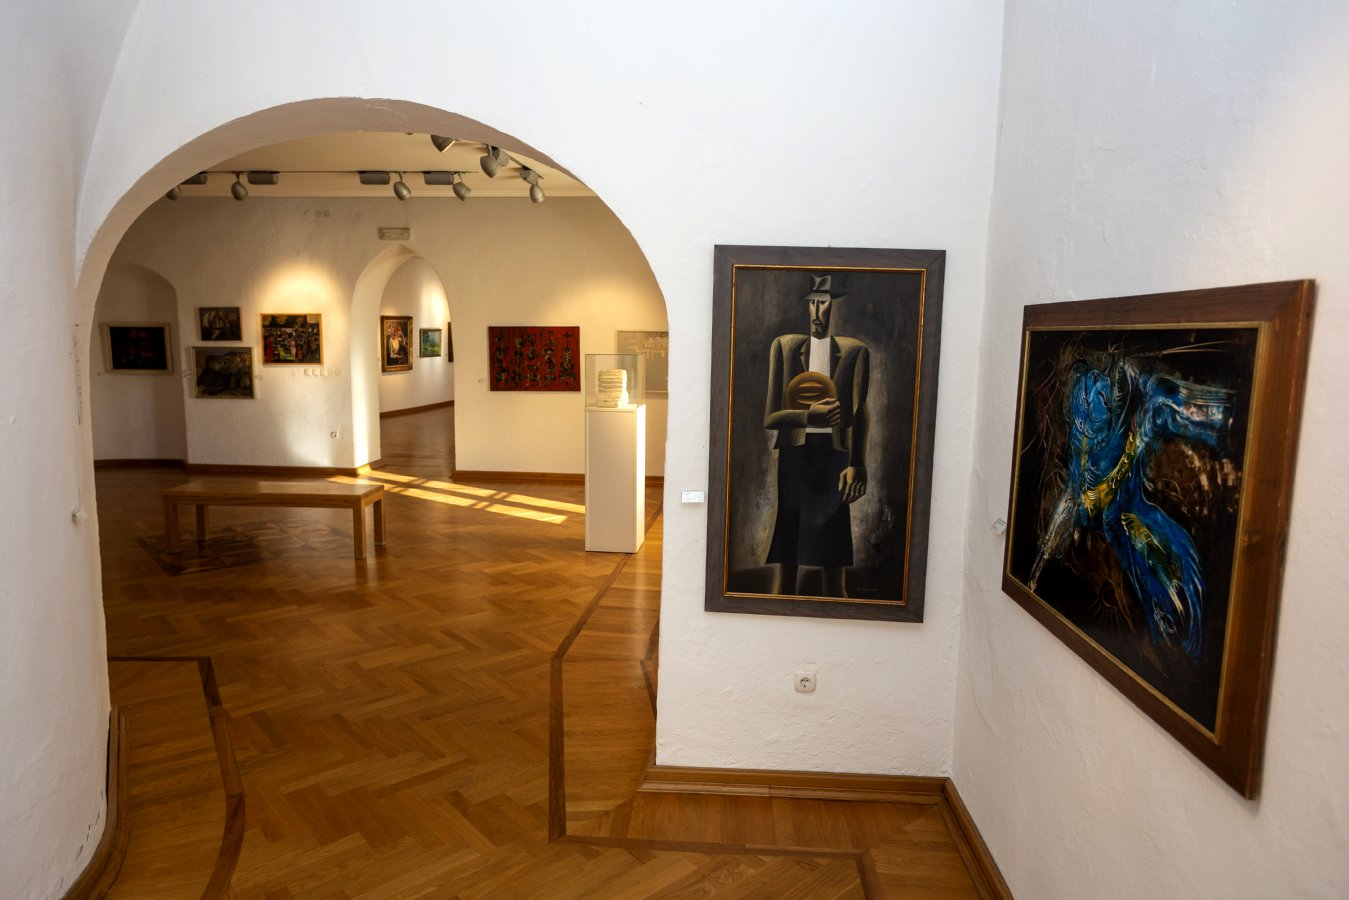 PERMANENT EXHIBITION OF THE MODERN SLOVENIAN ART